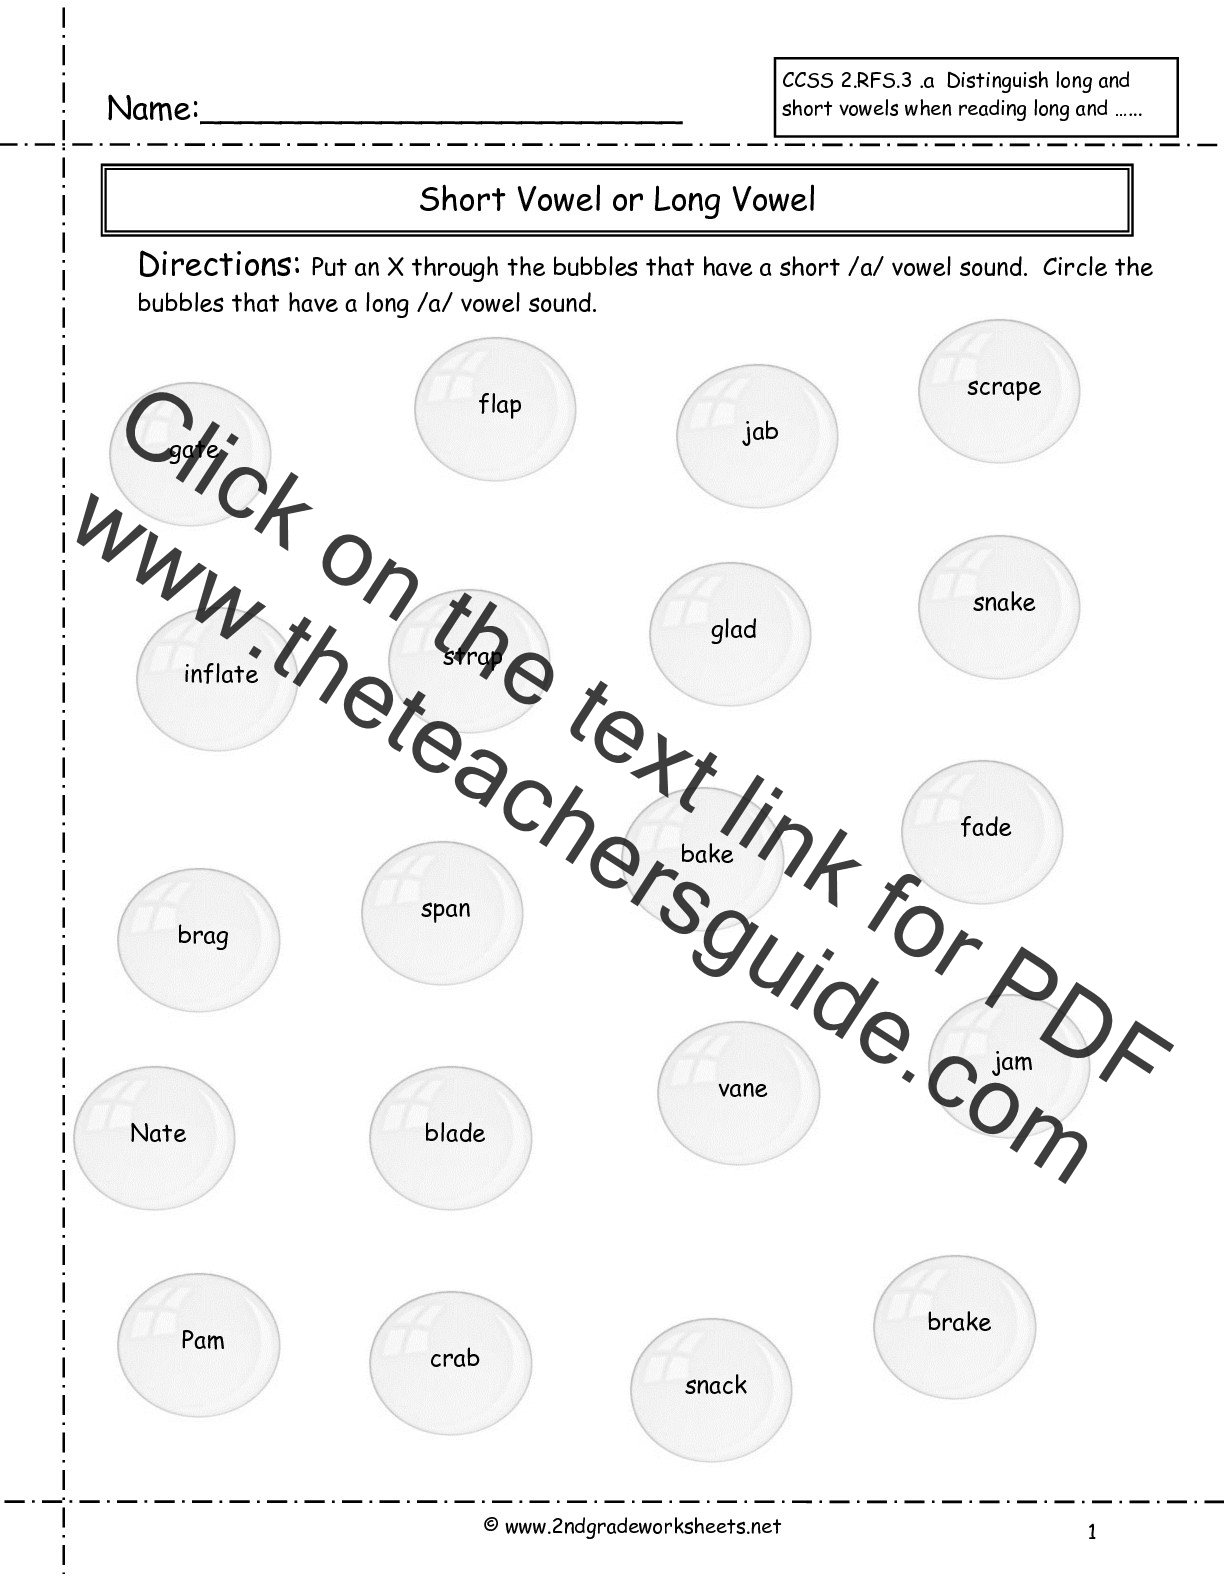 Worksheets Second Grade Phonics Worksheets second grade phonics worksheets and flashcards worksheet